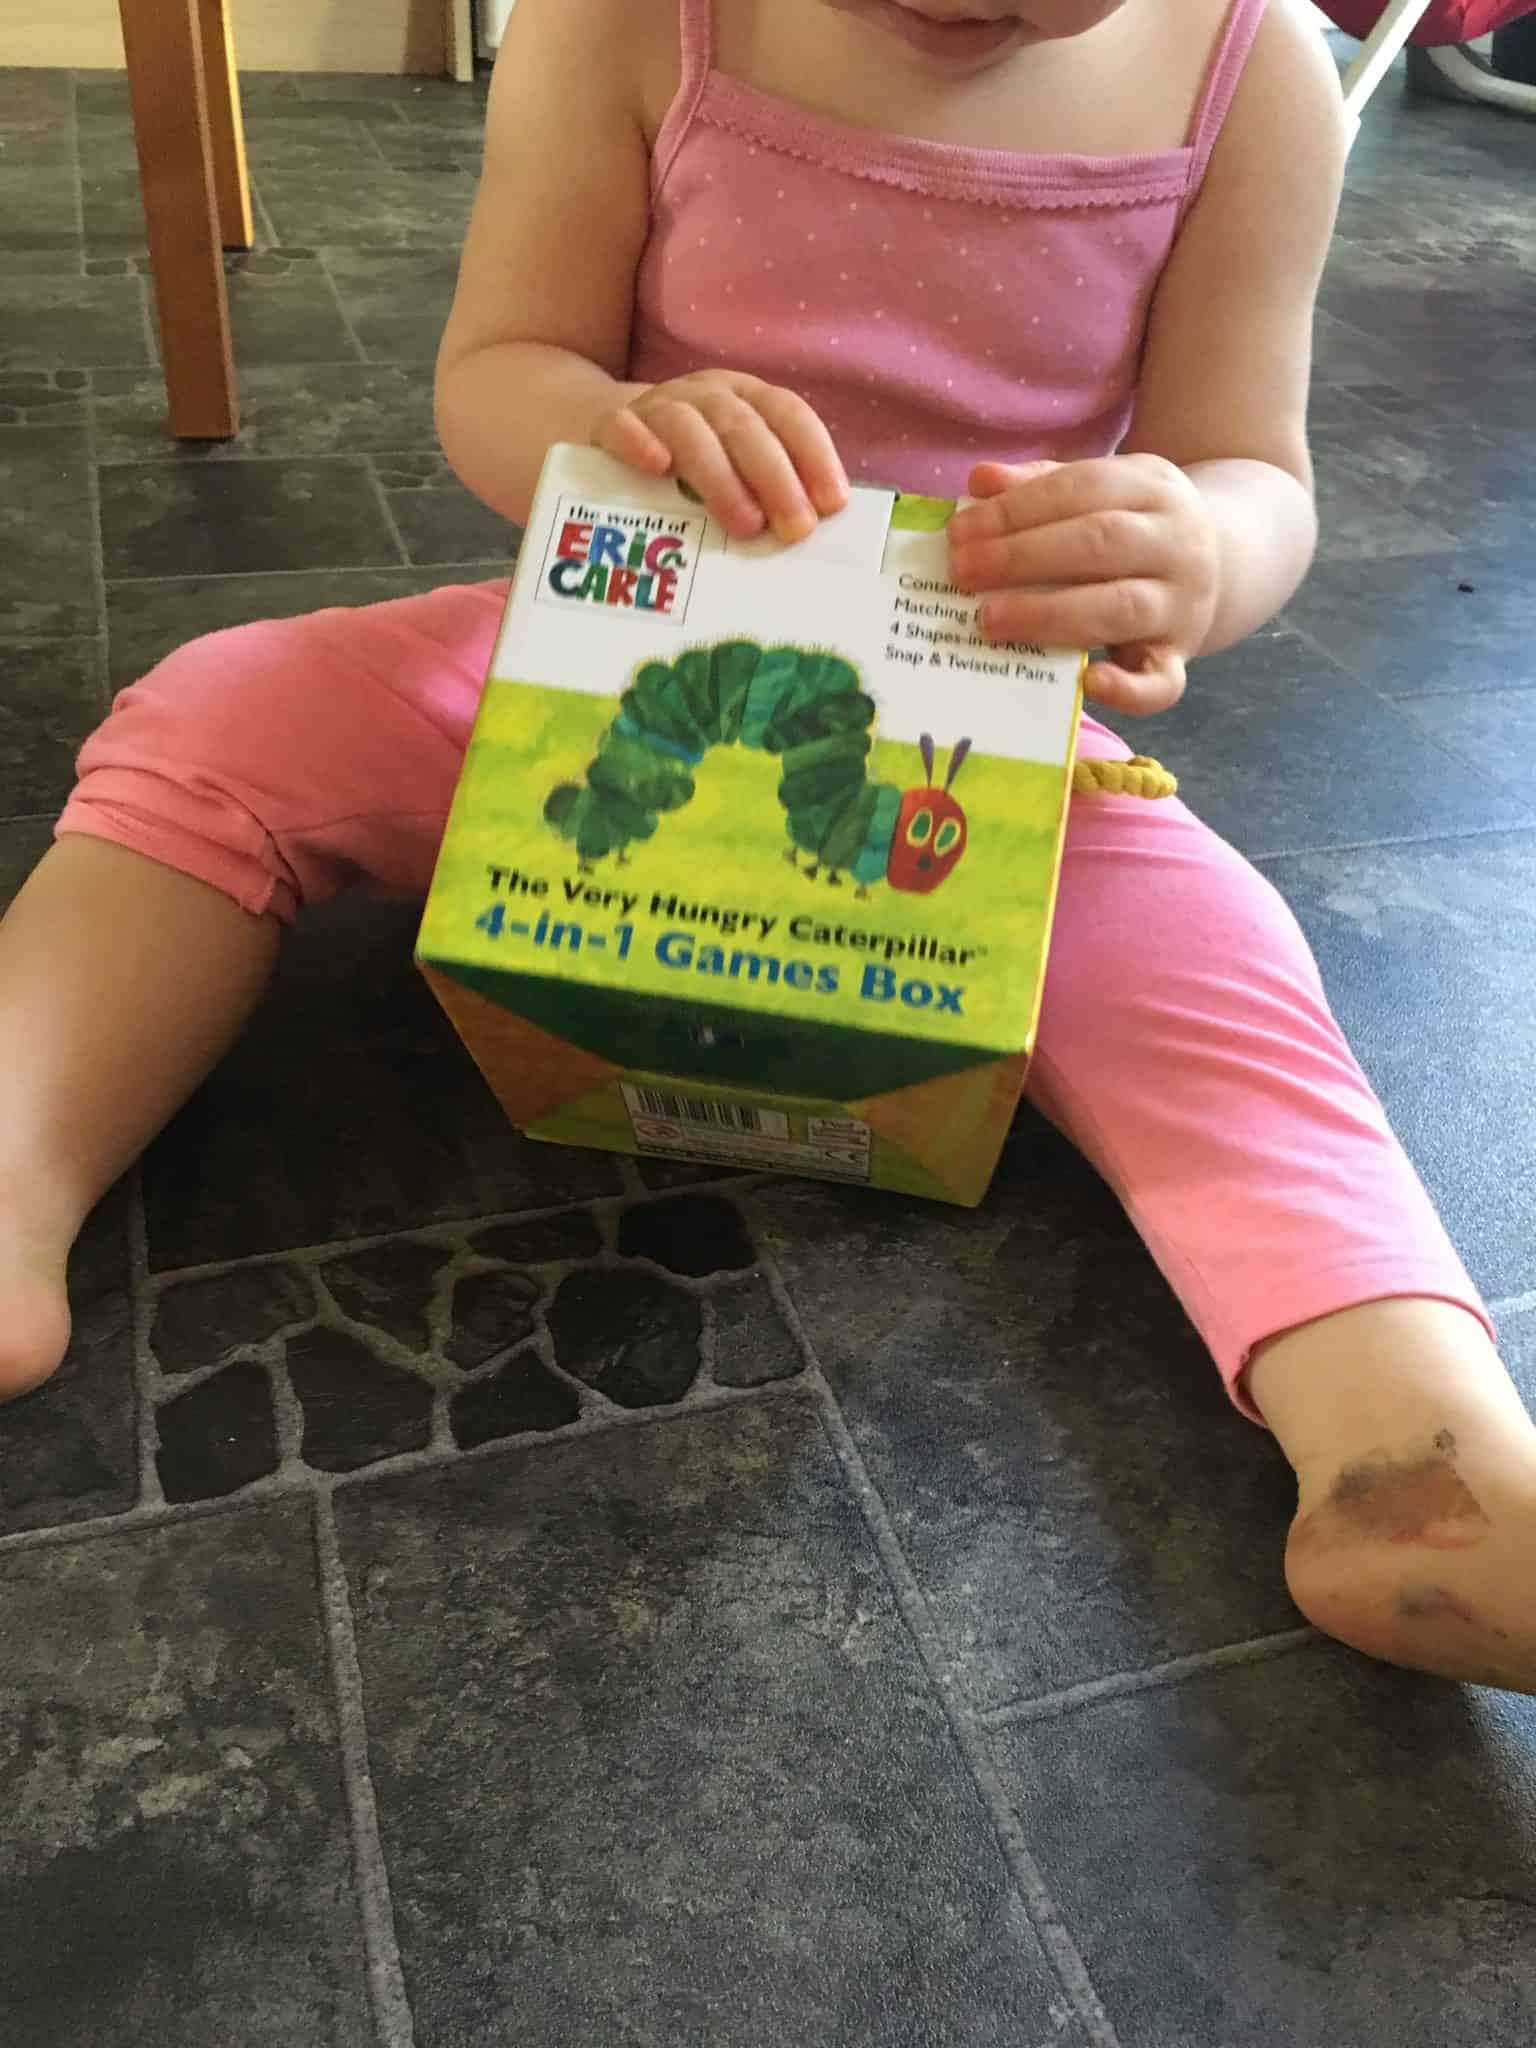 The Very Hungry Caterpillar 4 - IN- 1 games box